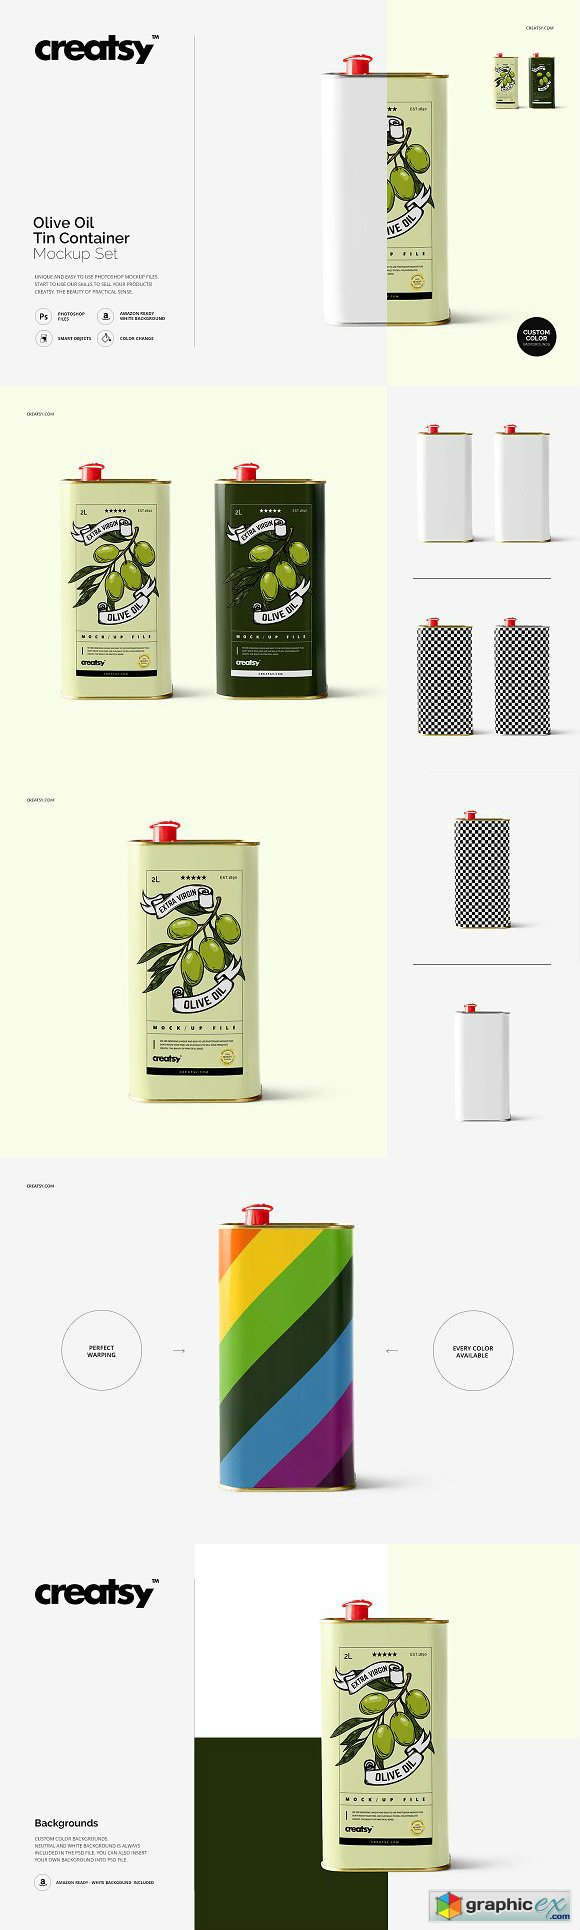 Olive Oil Tin Container Mockup Set